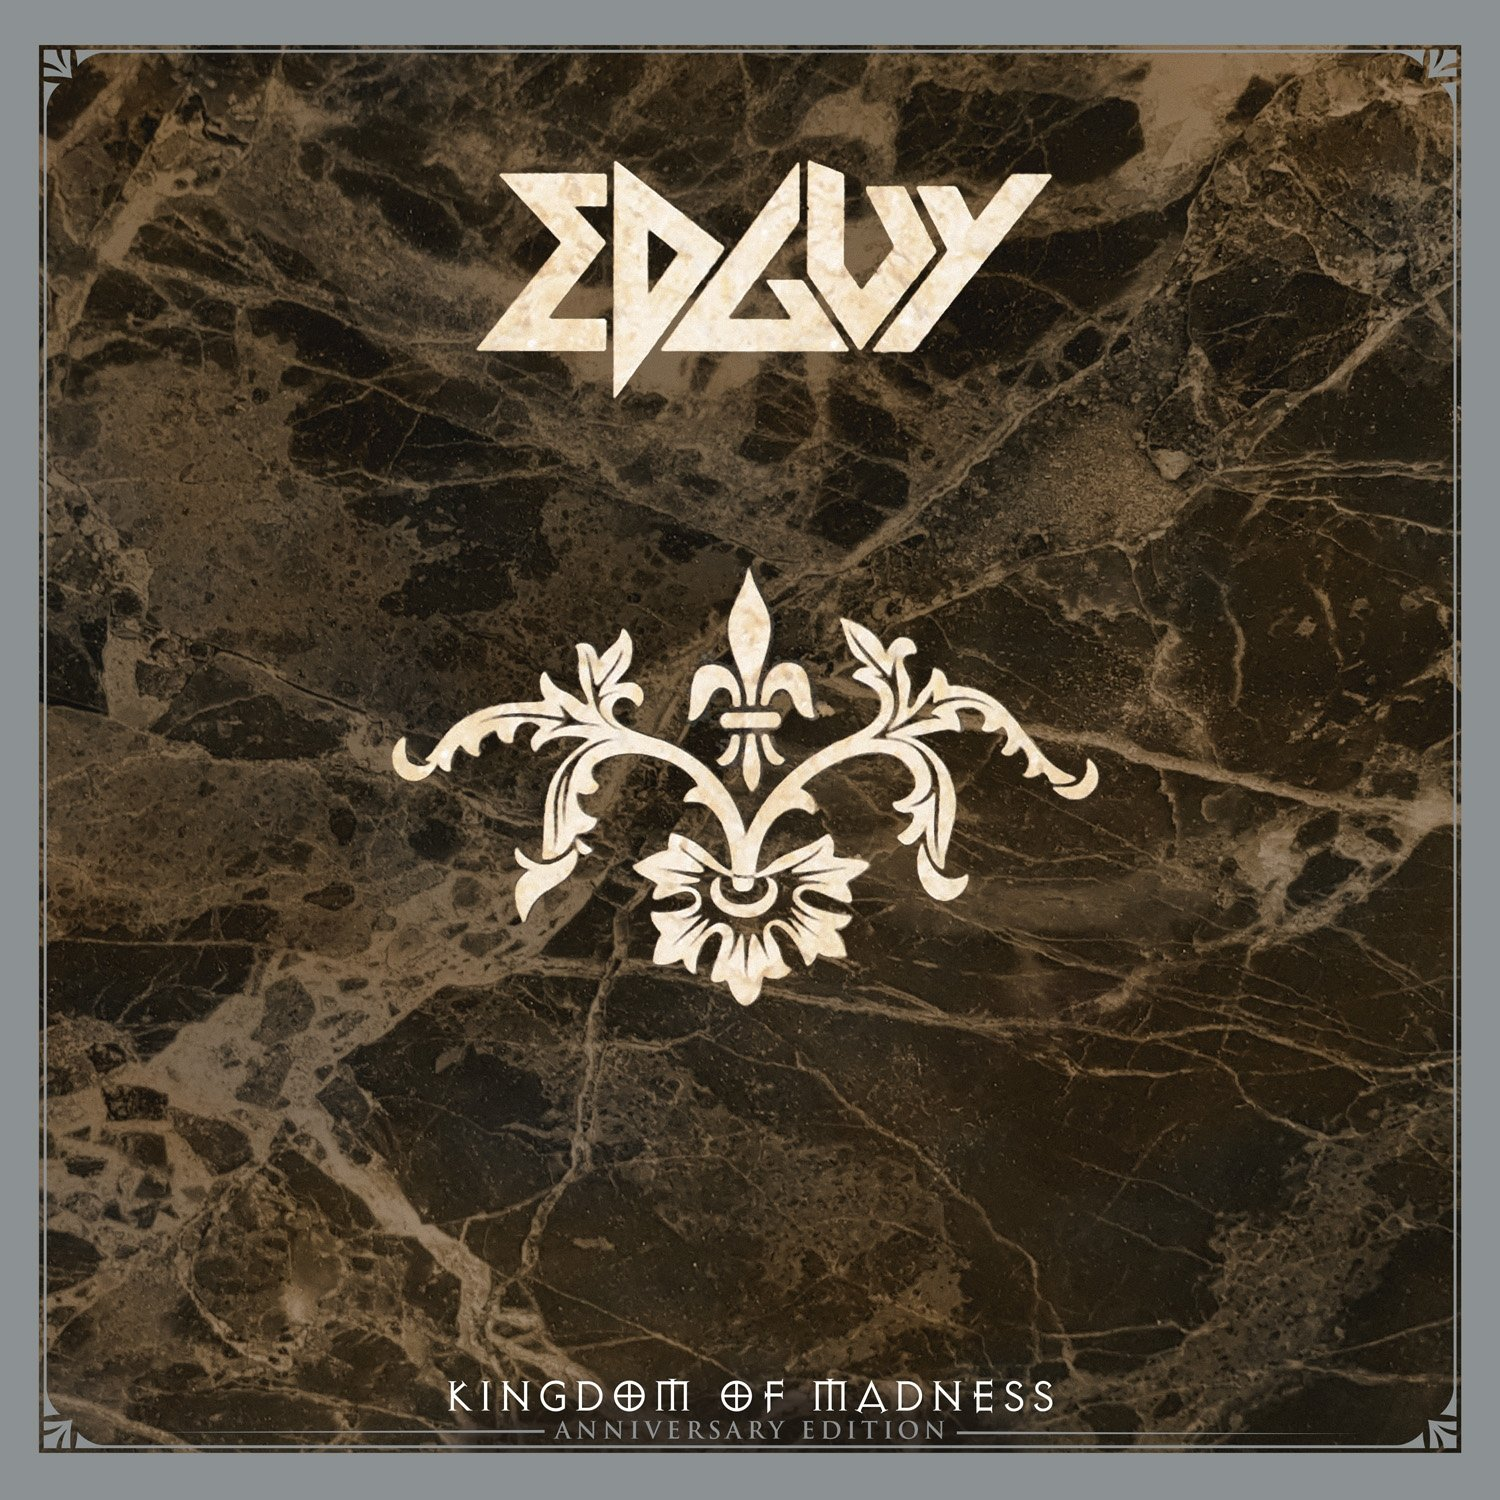 CD : Edguy - Kingdom Of Madness (CD)